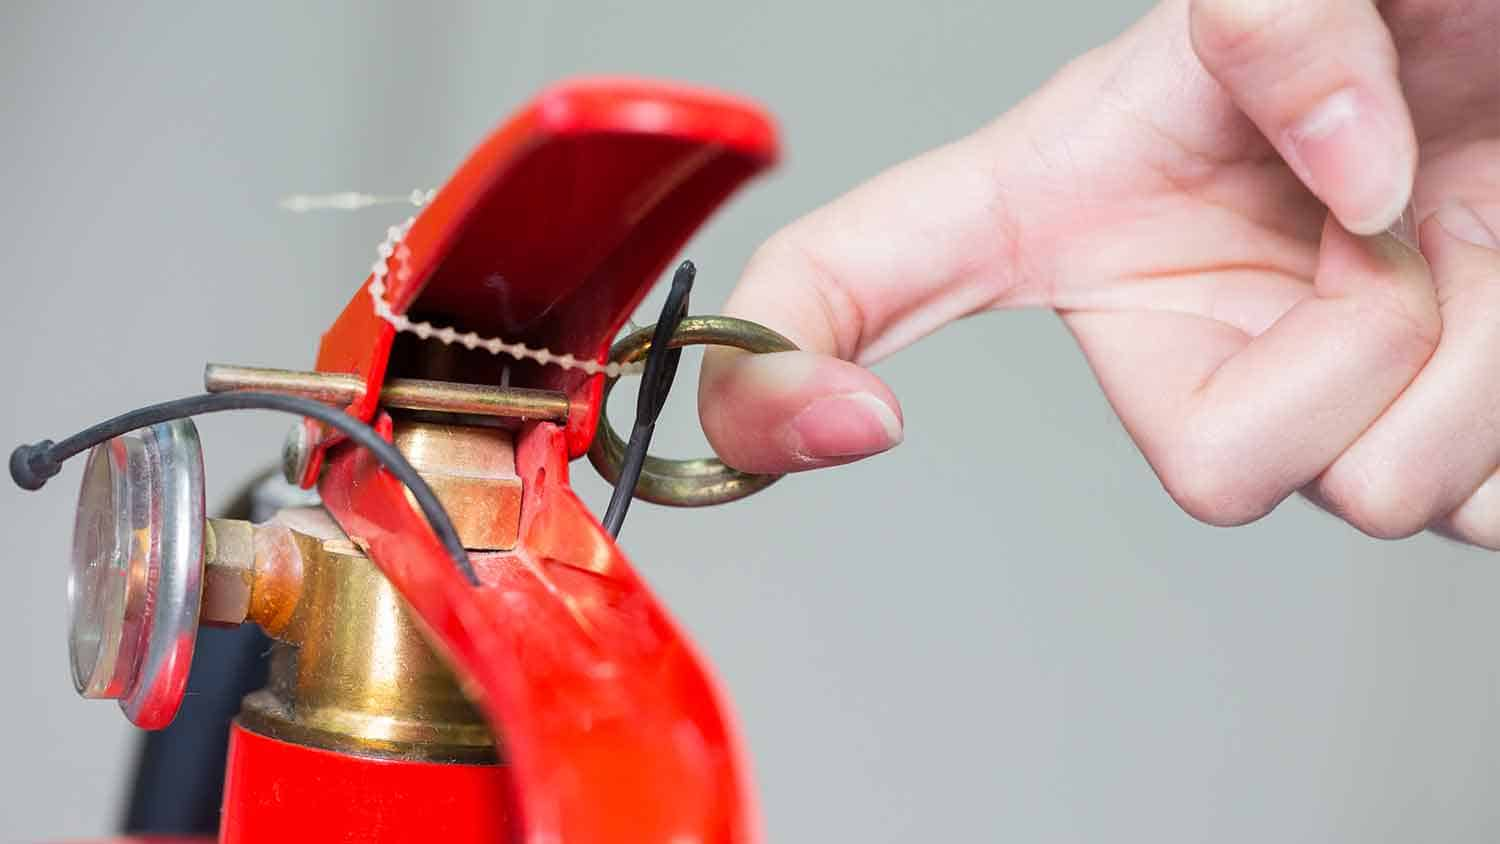 Fire extinguisher pin being pulled